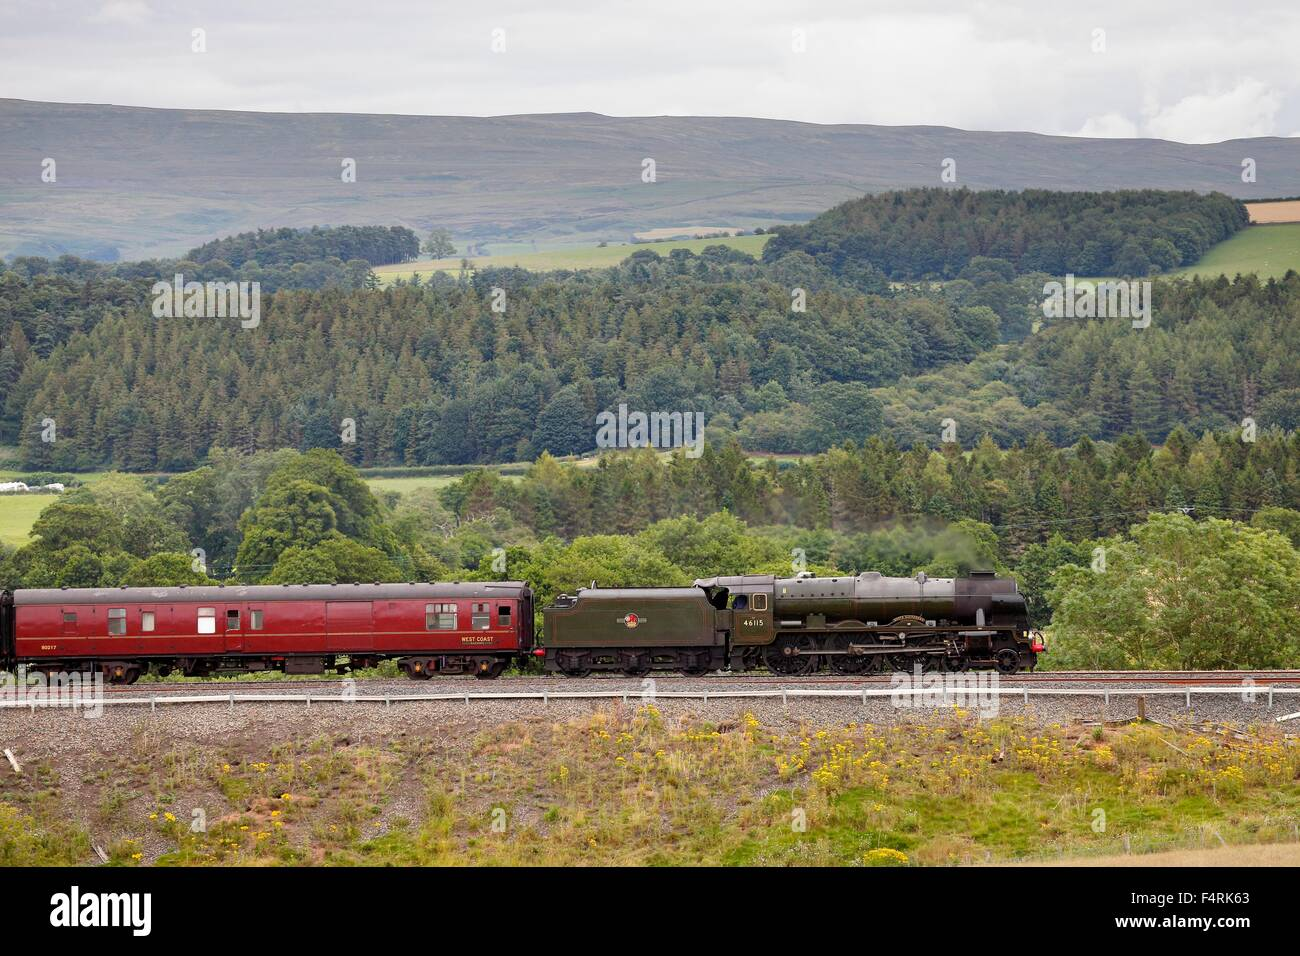 Steam locomotive LMS Royal Scot Class 46115 Scots Guardsman on the Settle to Carlisle Railway Line near Lazonby, - Stock Image